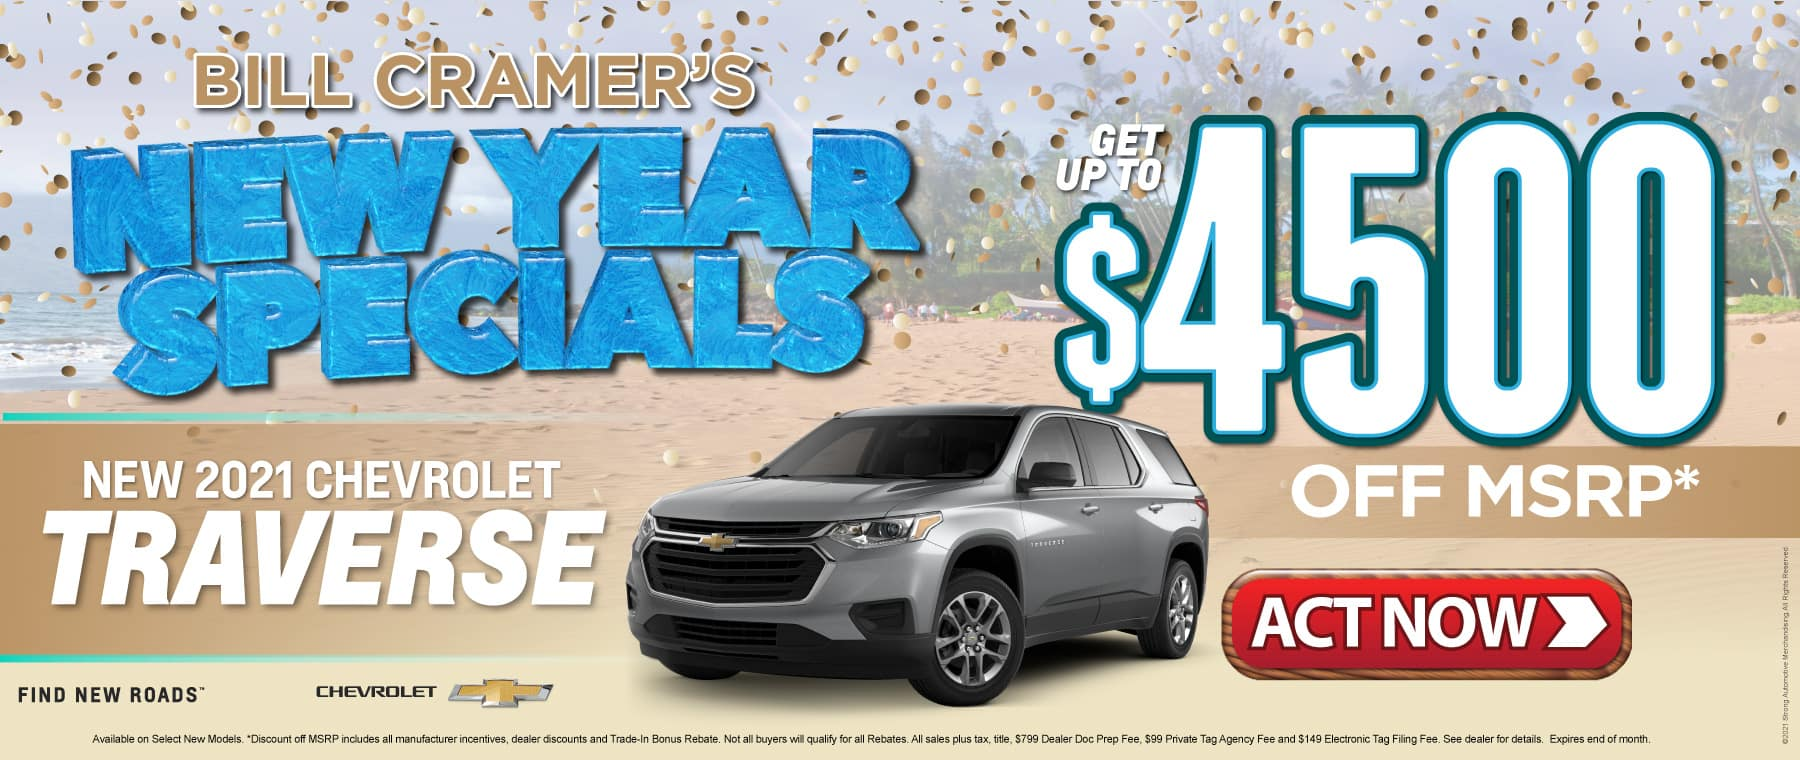 New 2021 Chevy Traverse - Get up to $4500 off msrp - Act Now